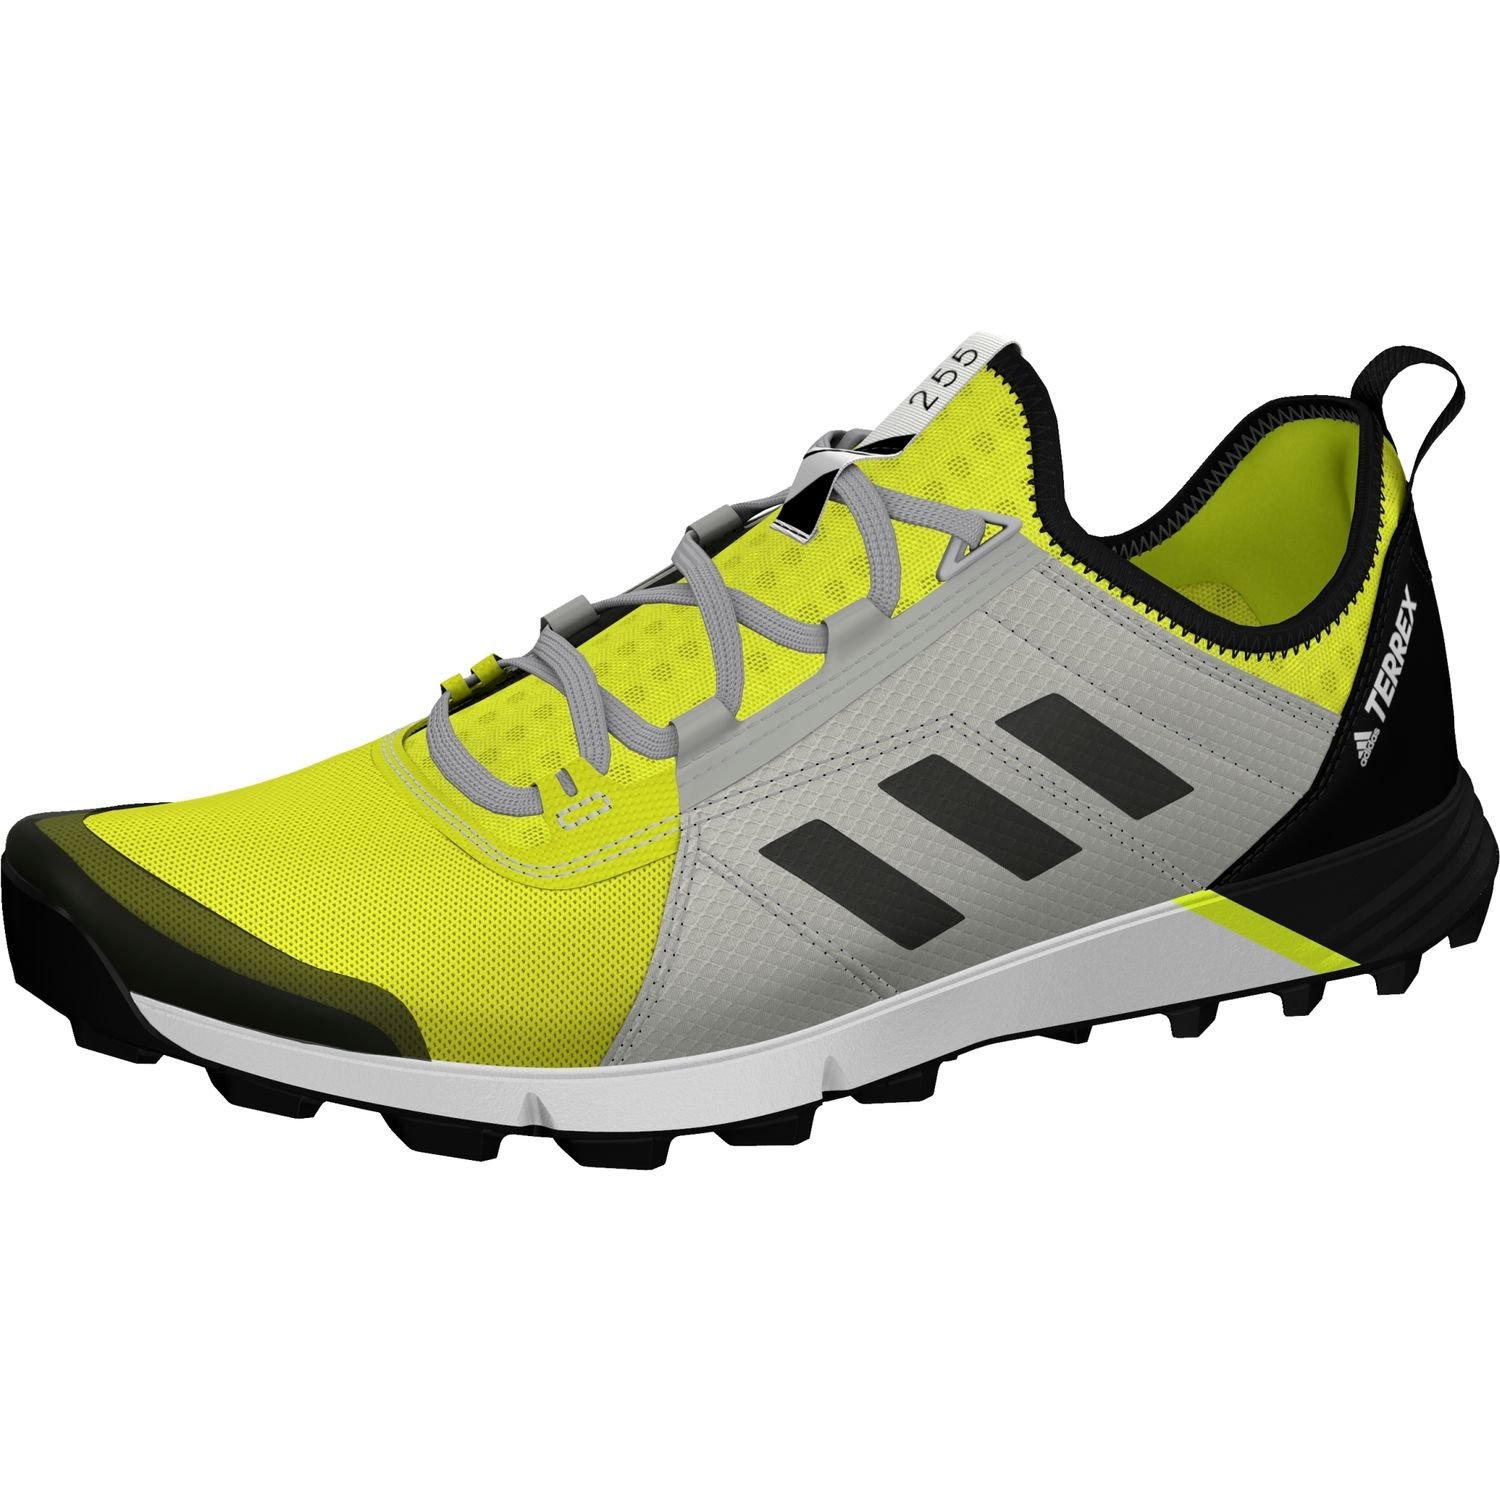 best loved cdd5a 8d9d5 adidas TERREX AGRAVIC SPEED shoes mens Outdoor Shoes S80863